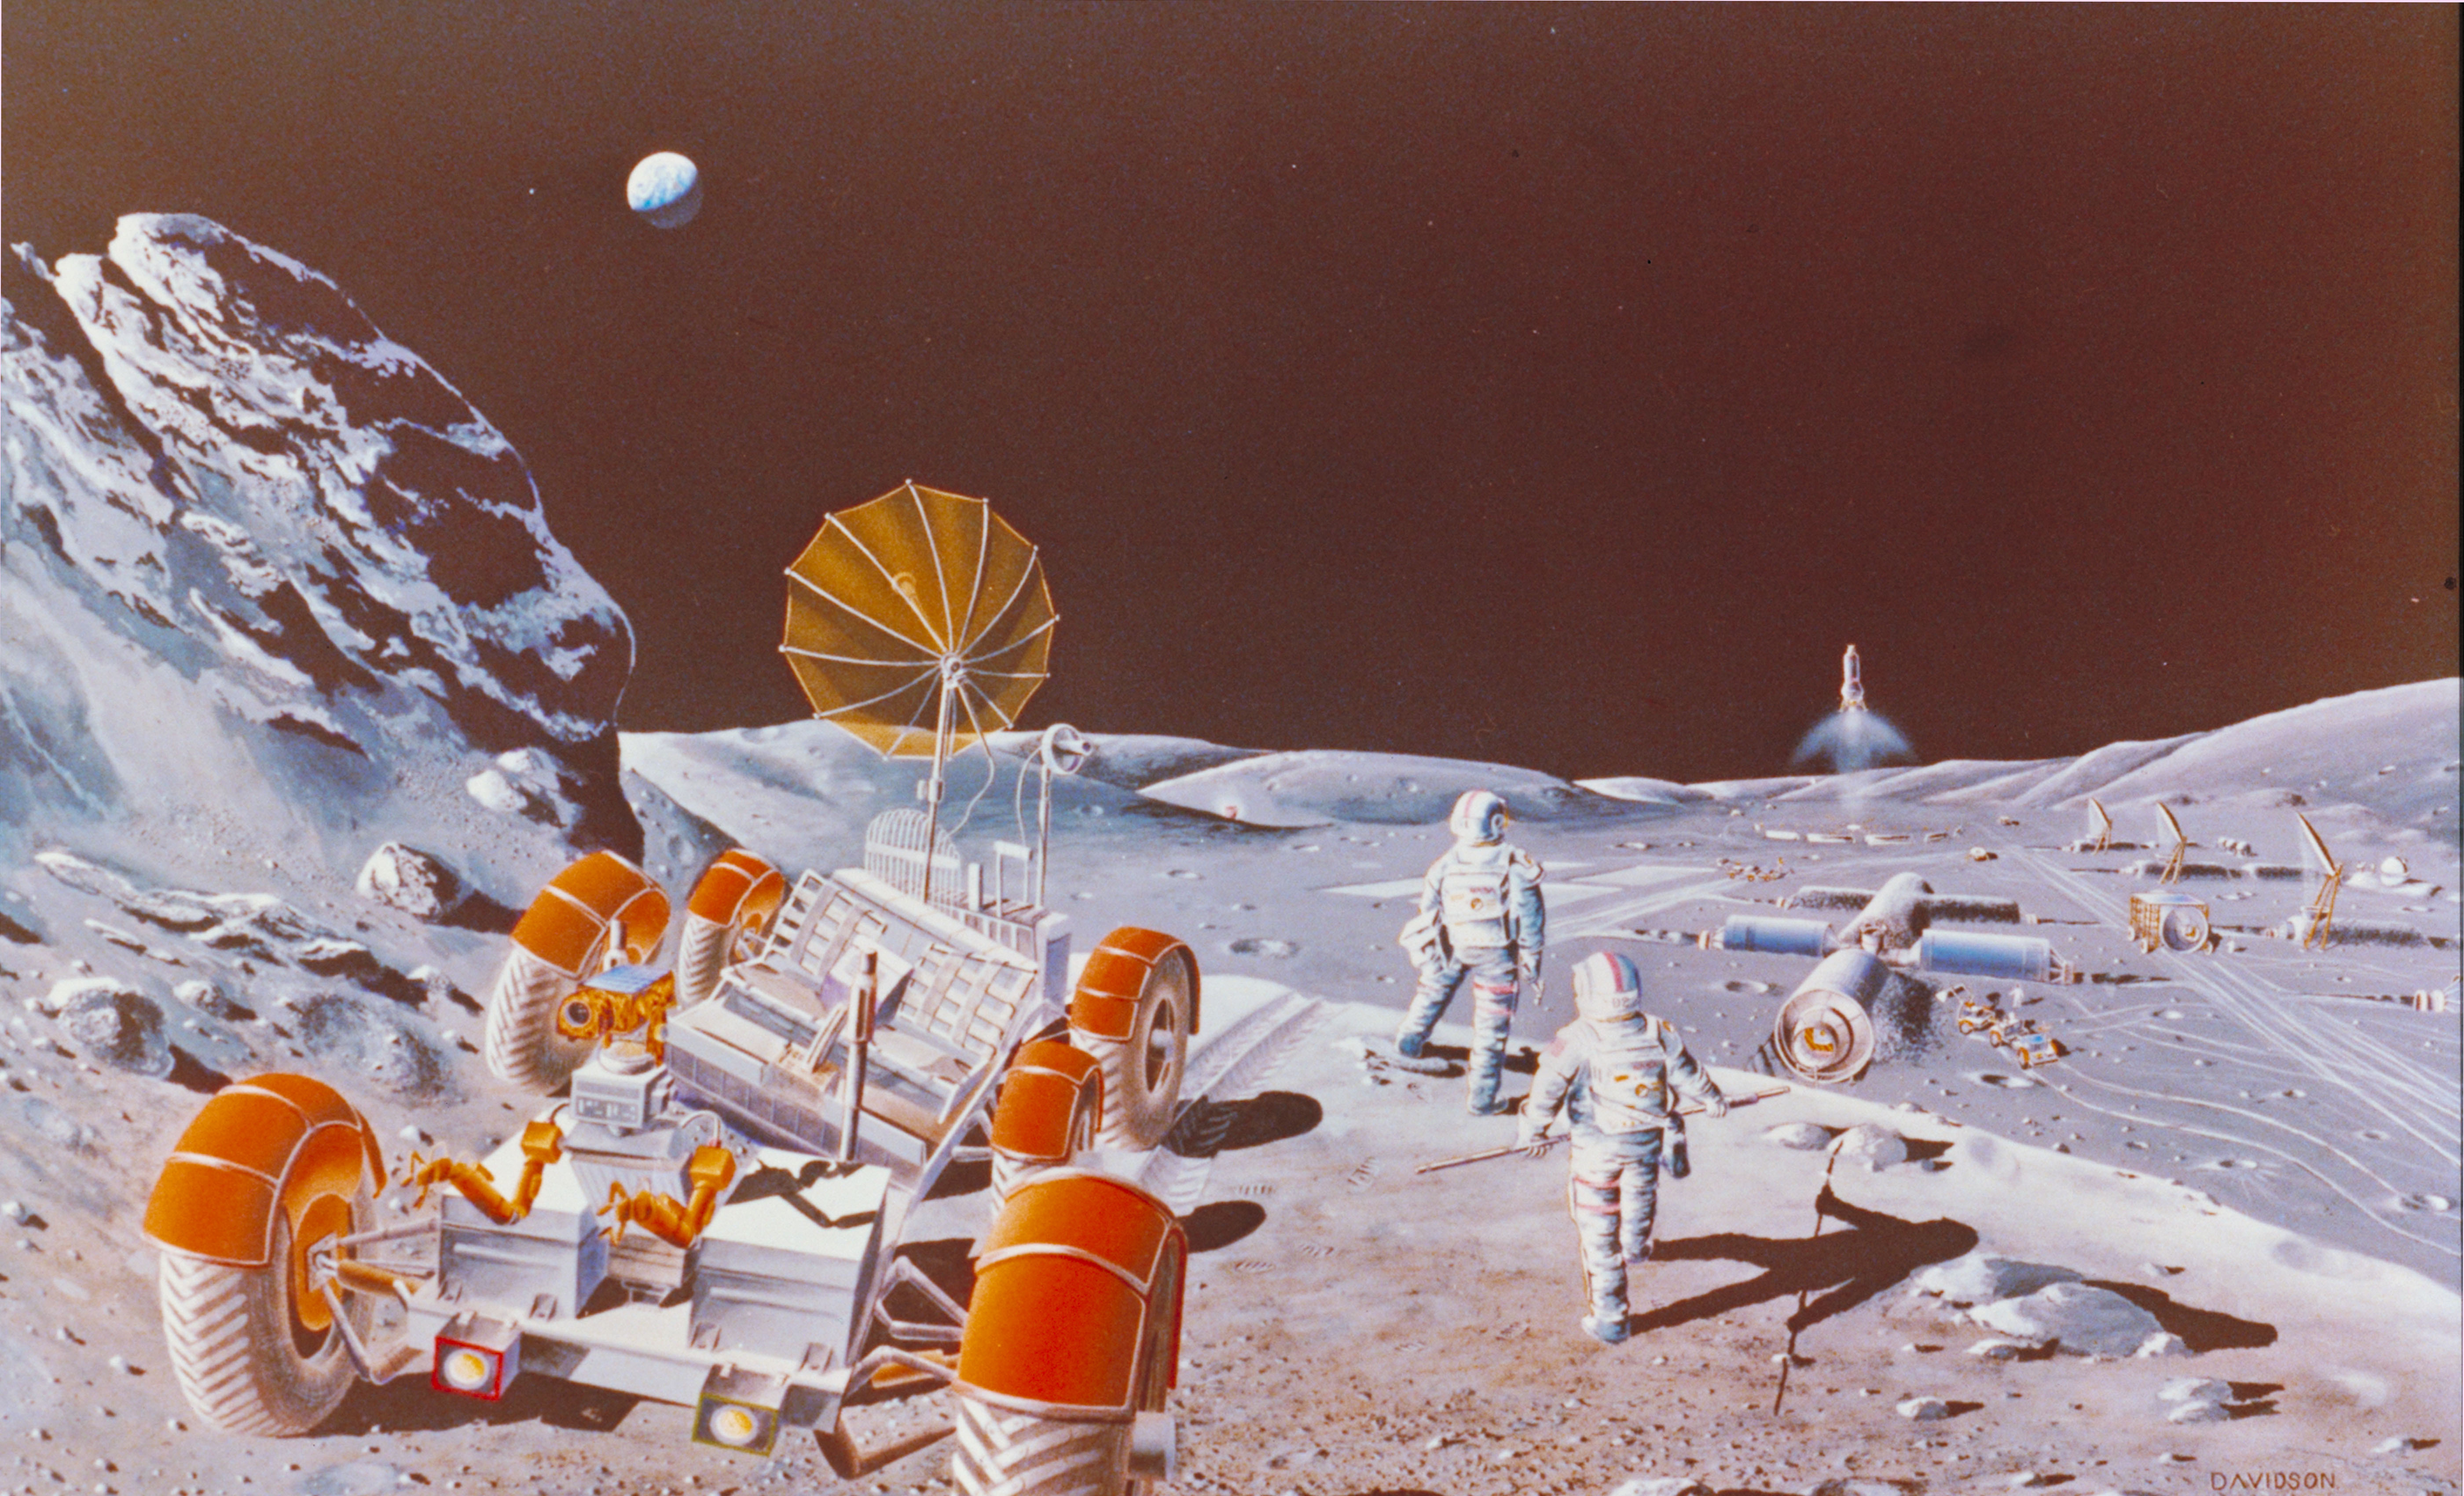 mission to mars concept art - photo #25